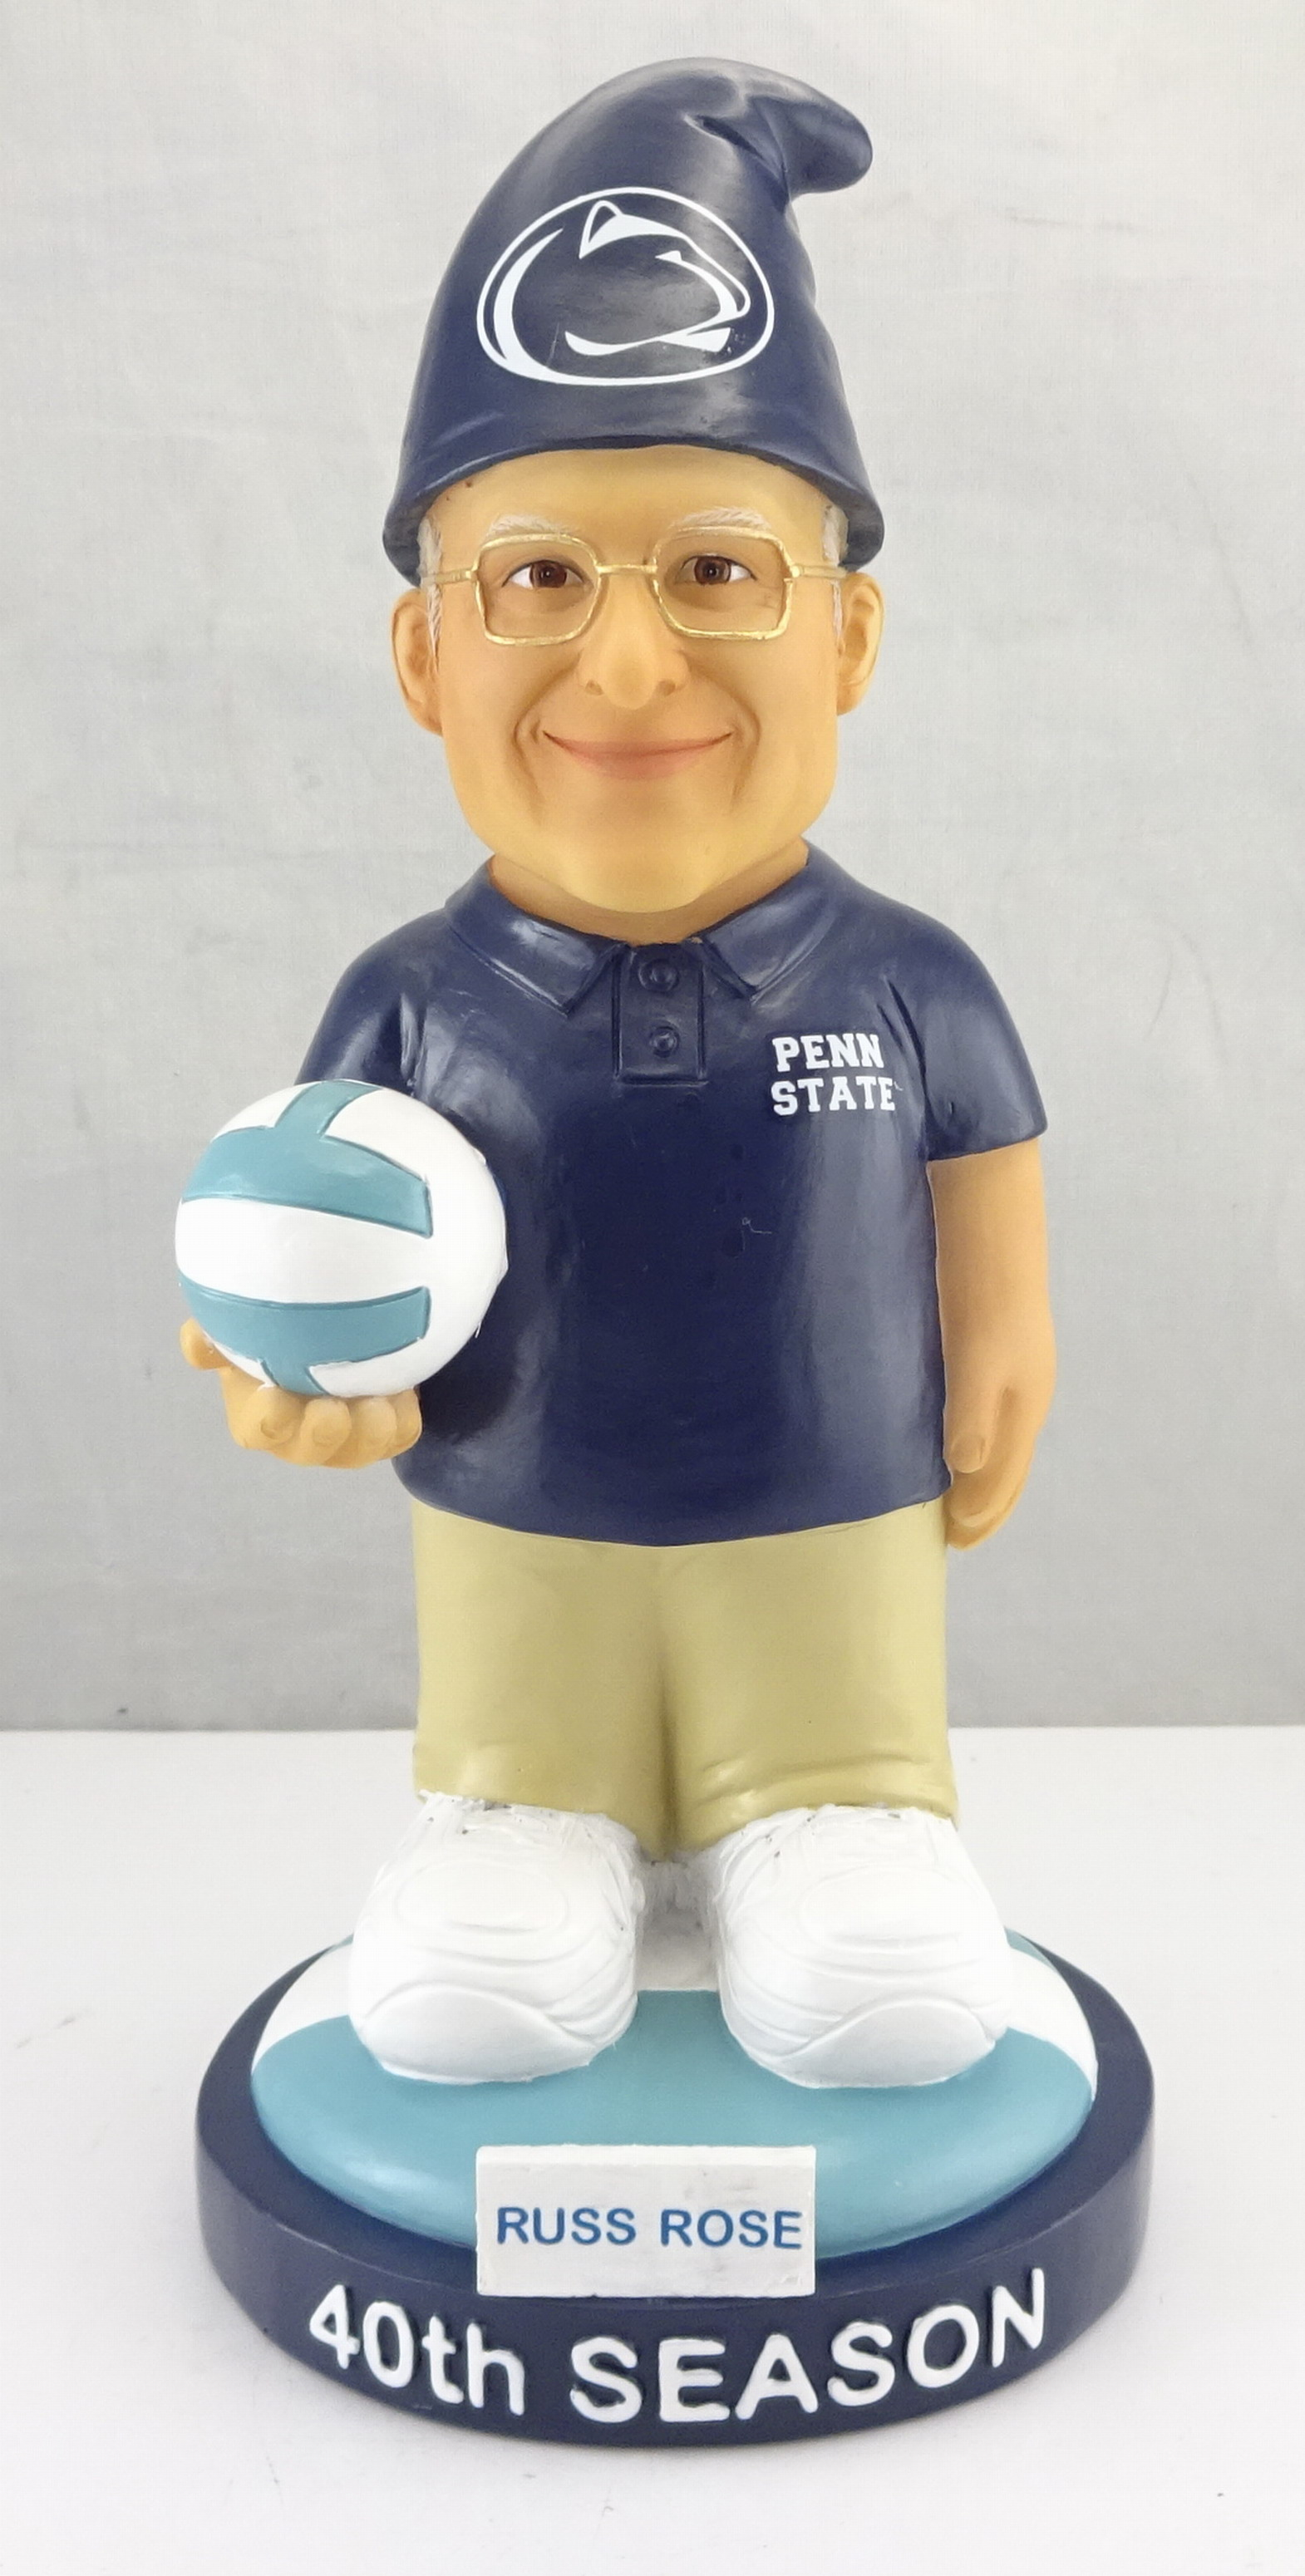 Penn State University - Coach Russ Rose 113638, 7in Gnome (1).jpg